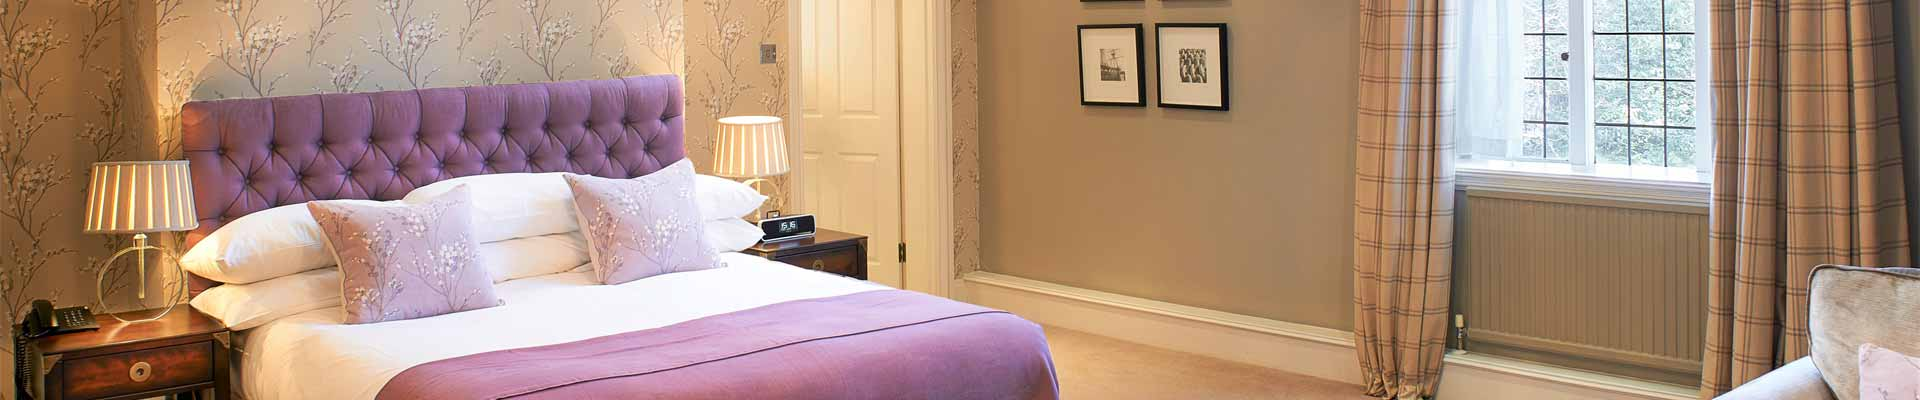 Photo of one of the bedroom suites at The Manor Elstree